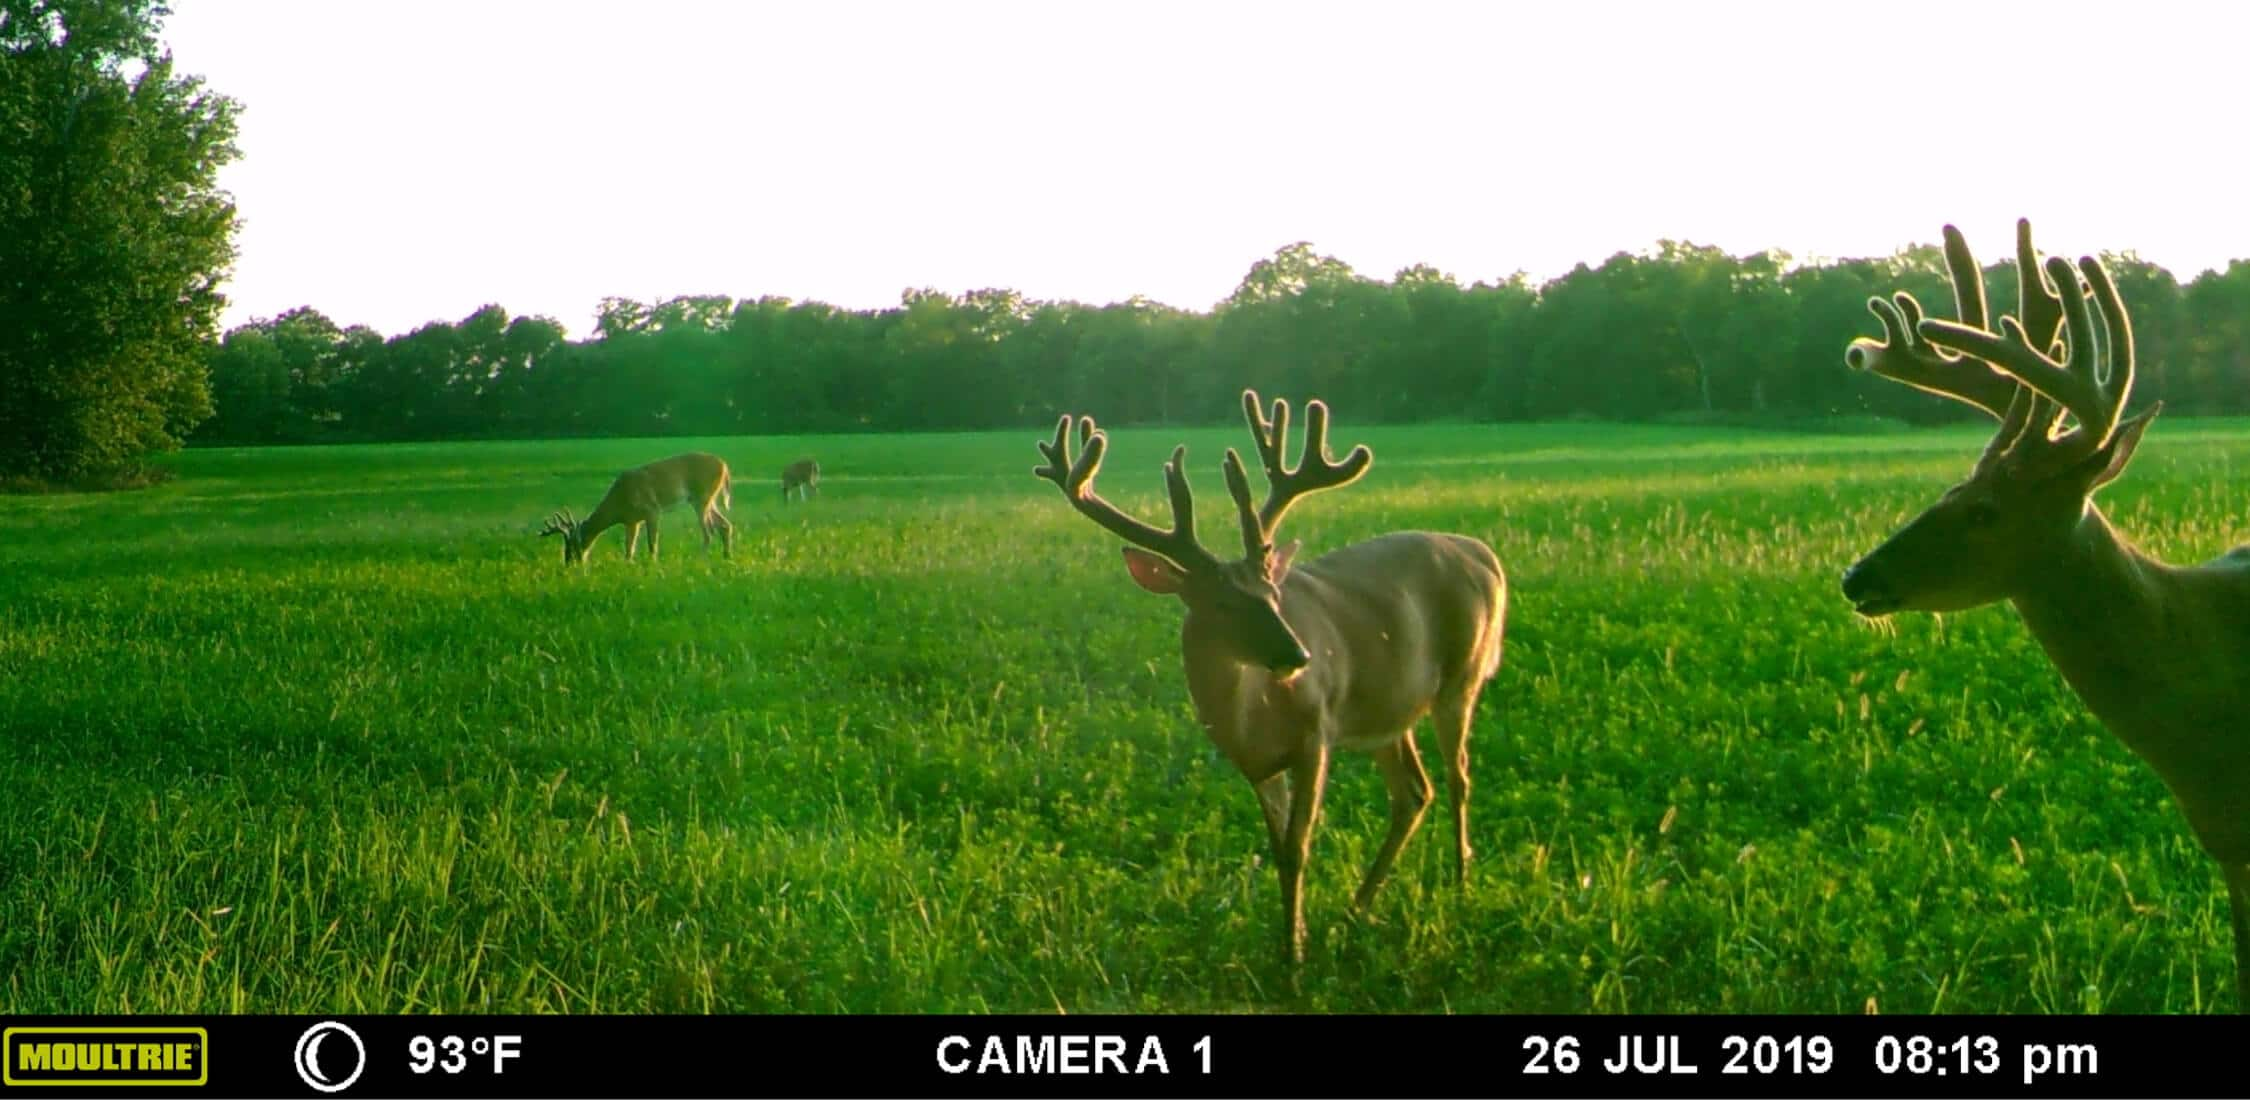 Image of deer taken from Moultrie Mobile cellular trail camera